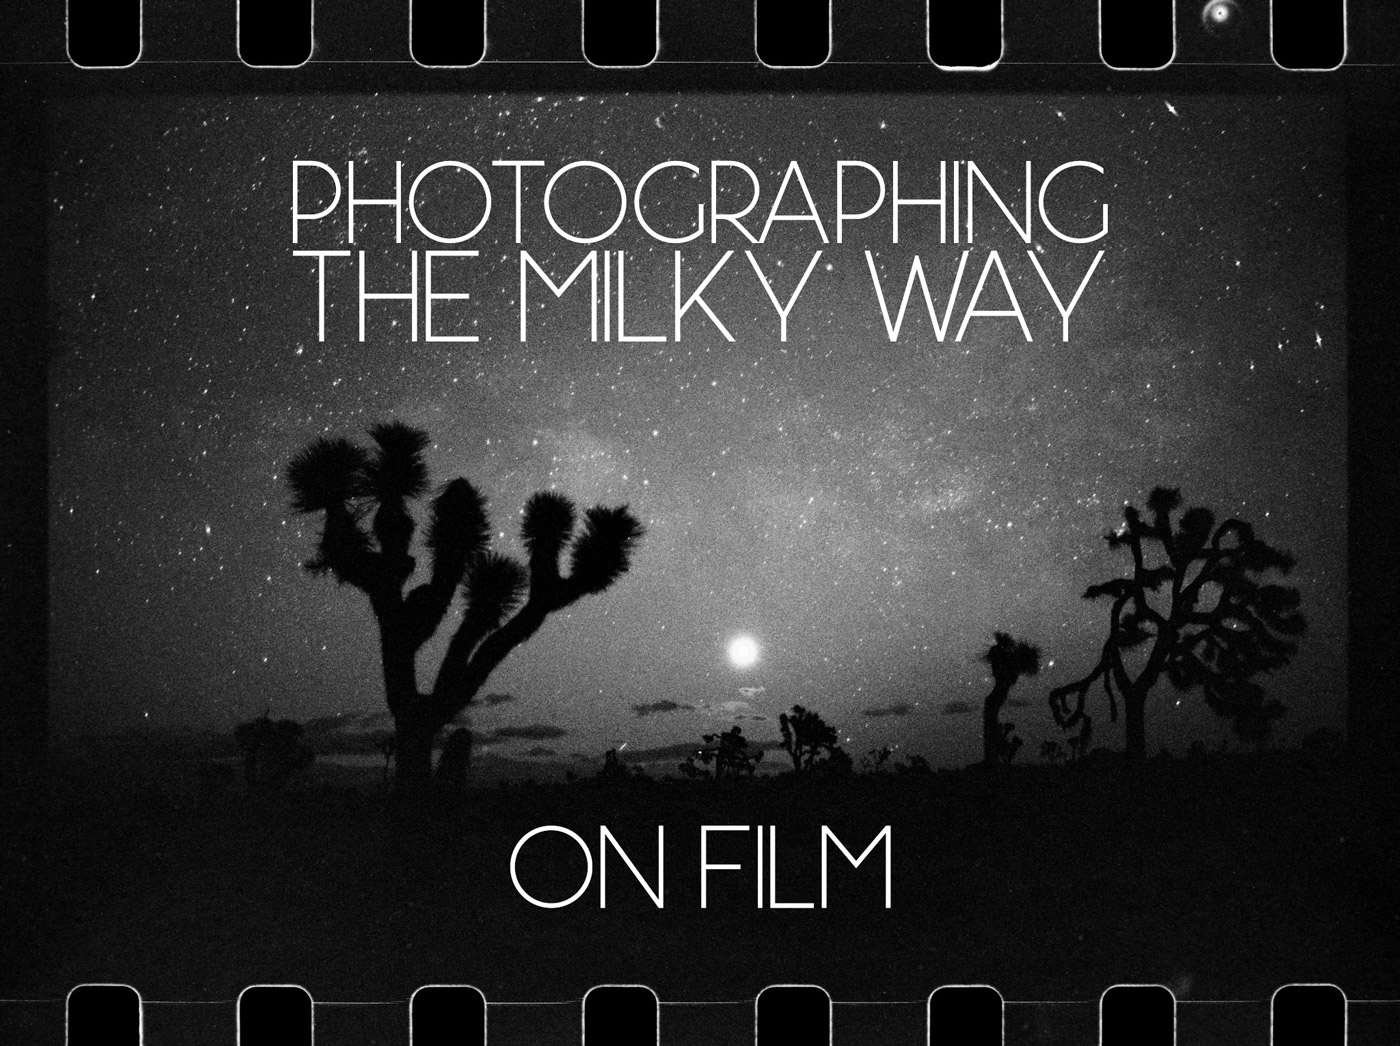 Photographing the Milky Way on Film